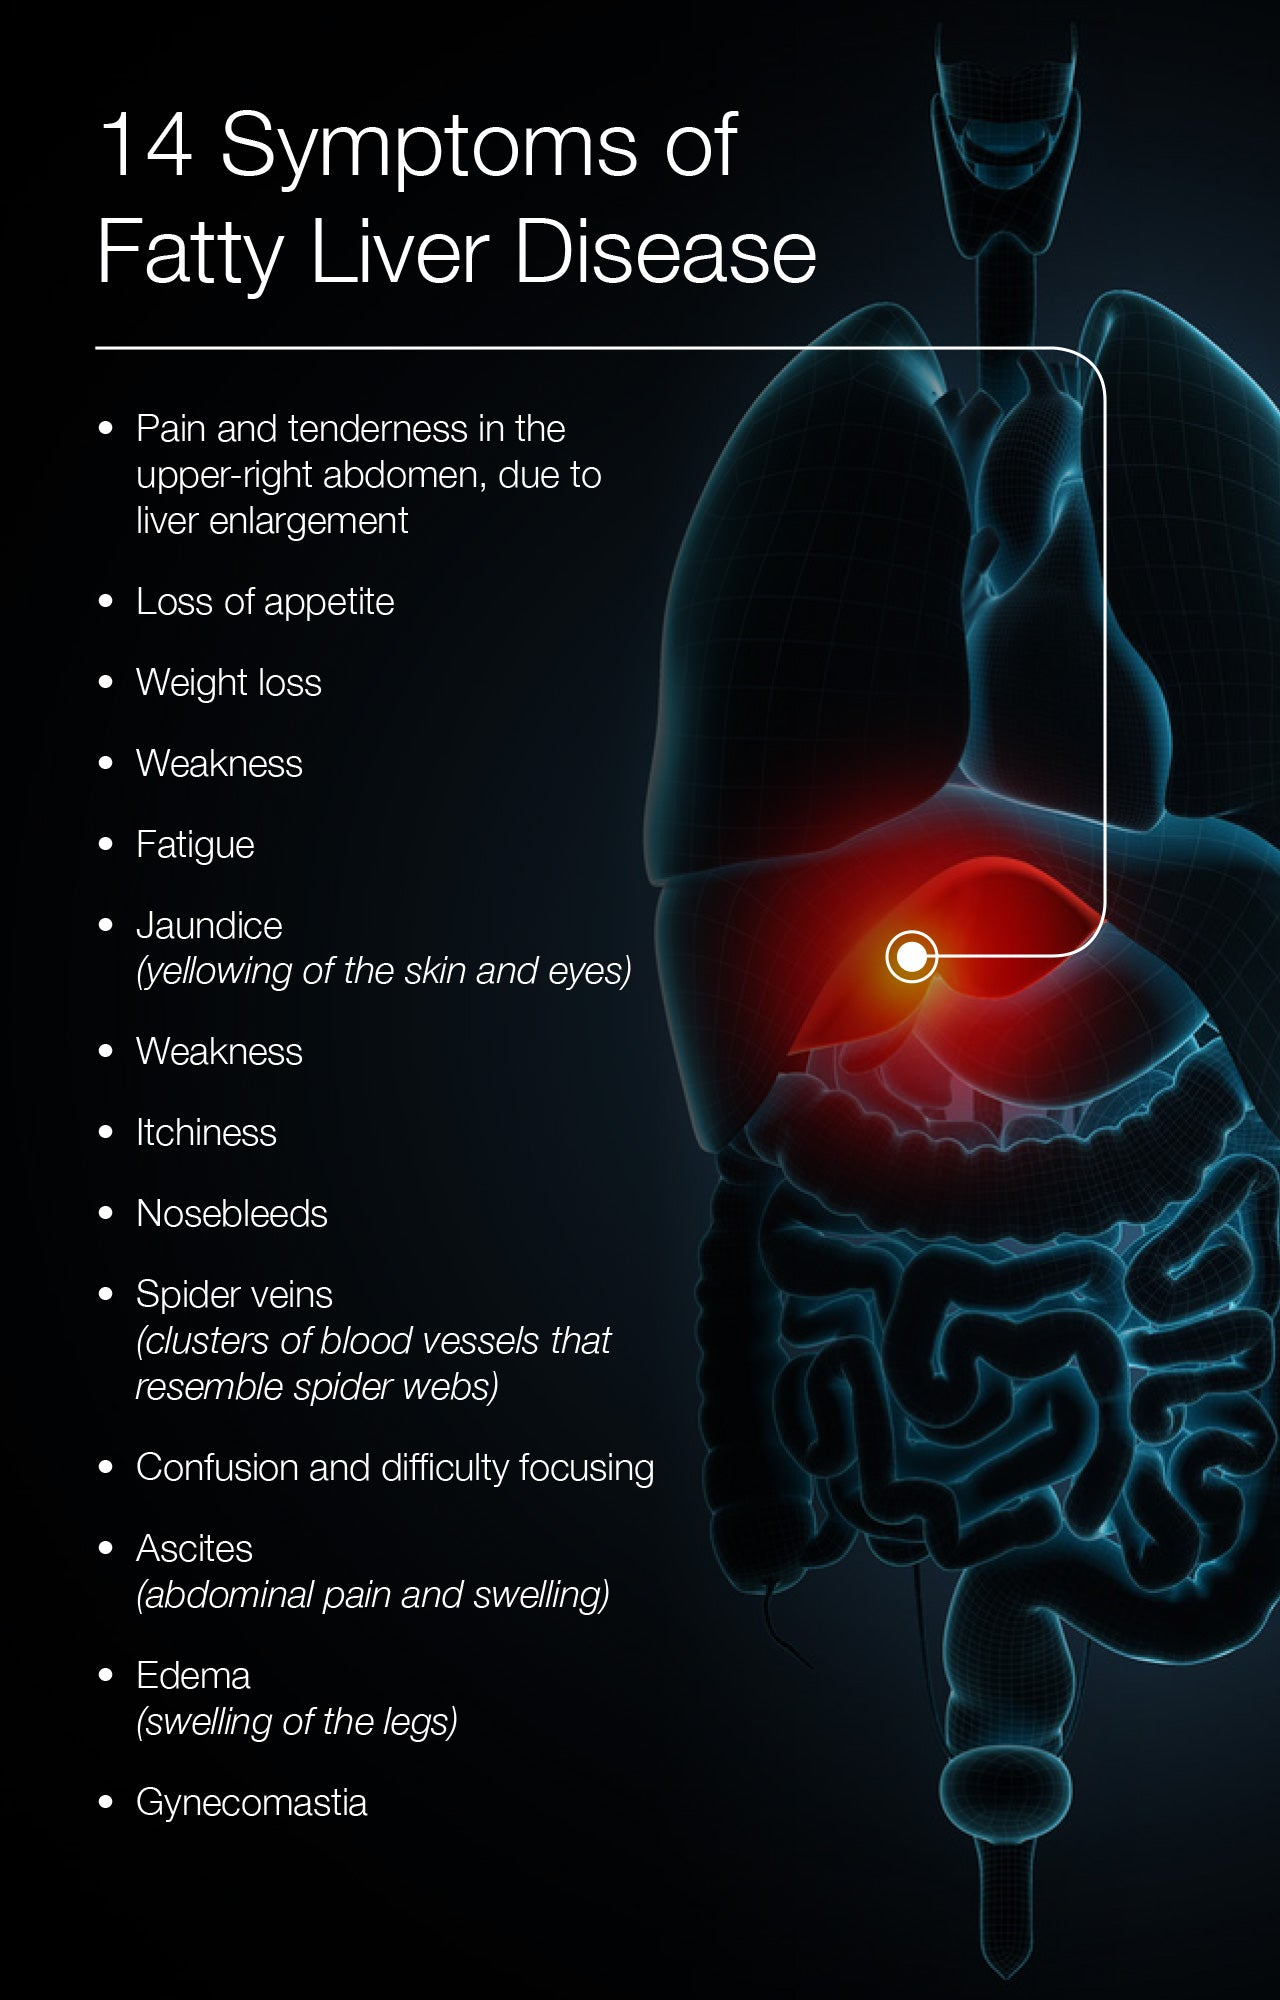 14 Symptoms of Fatty Liver Disease